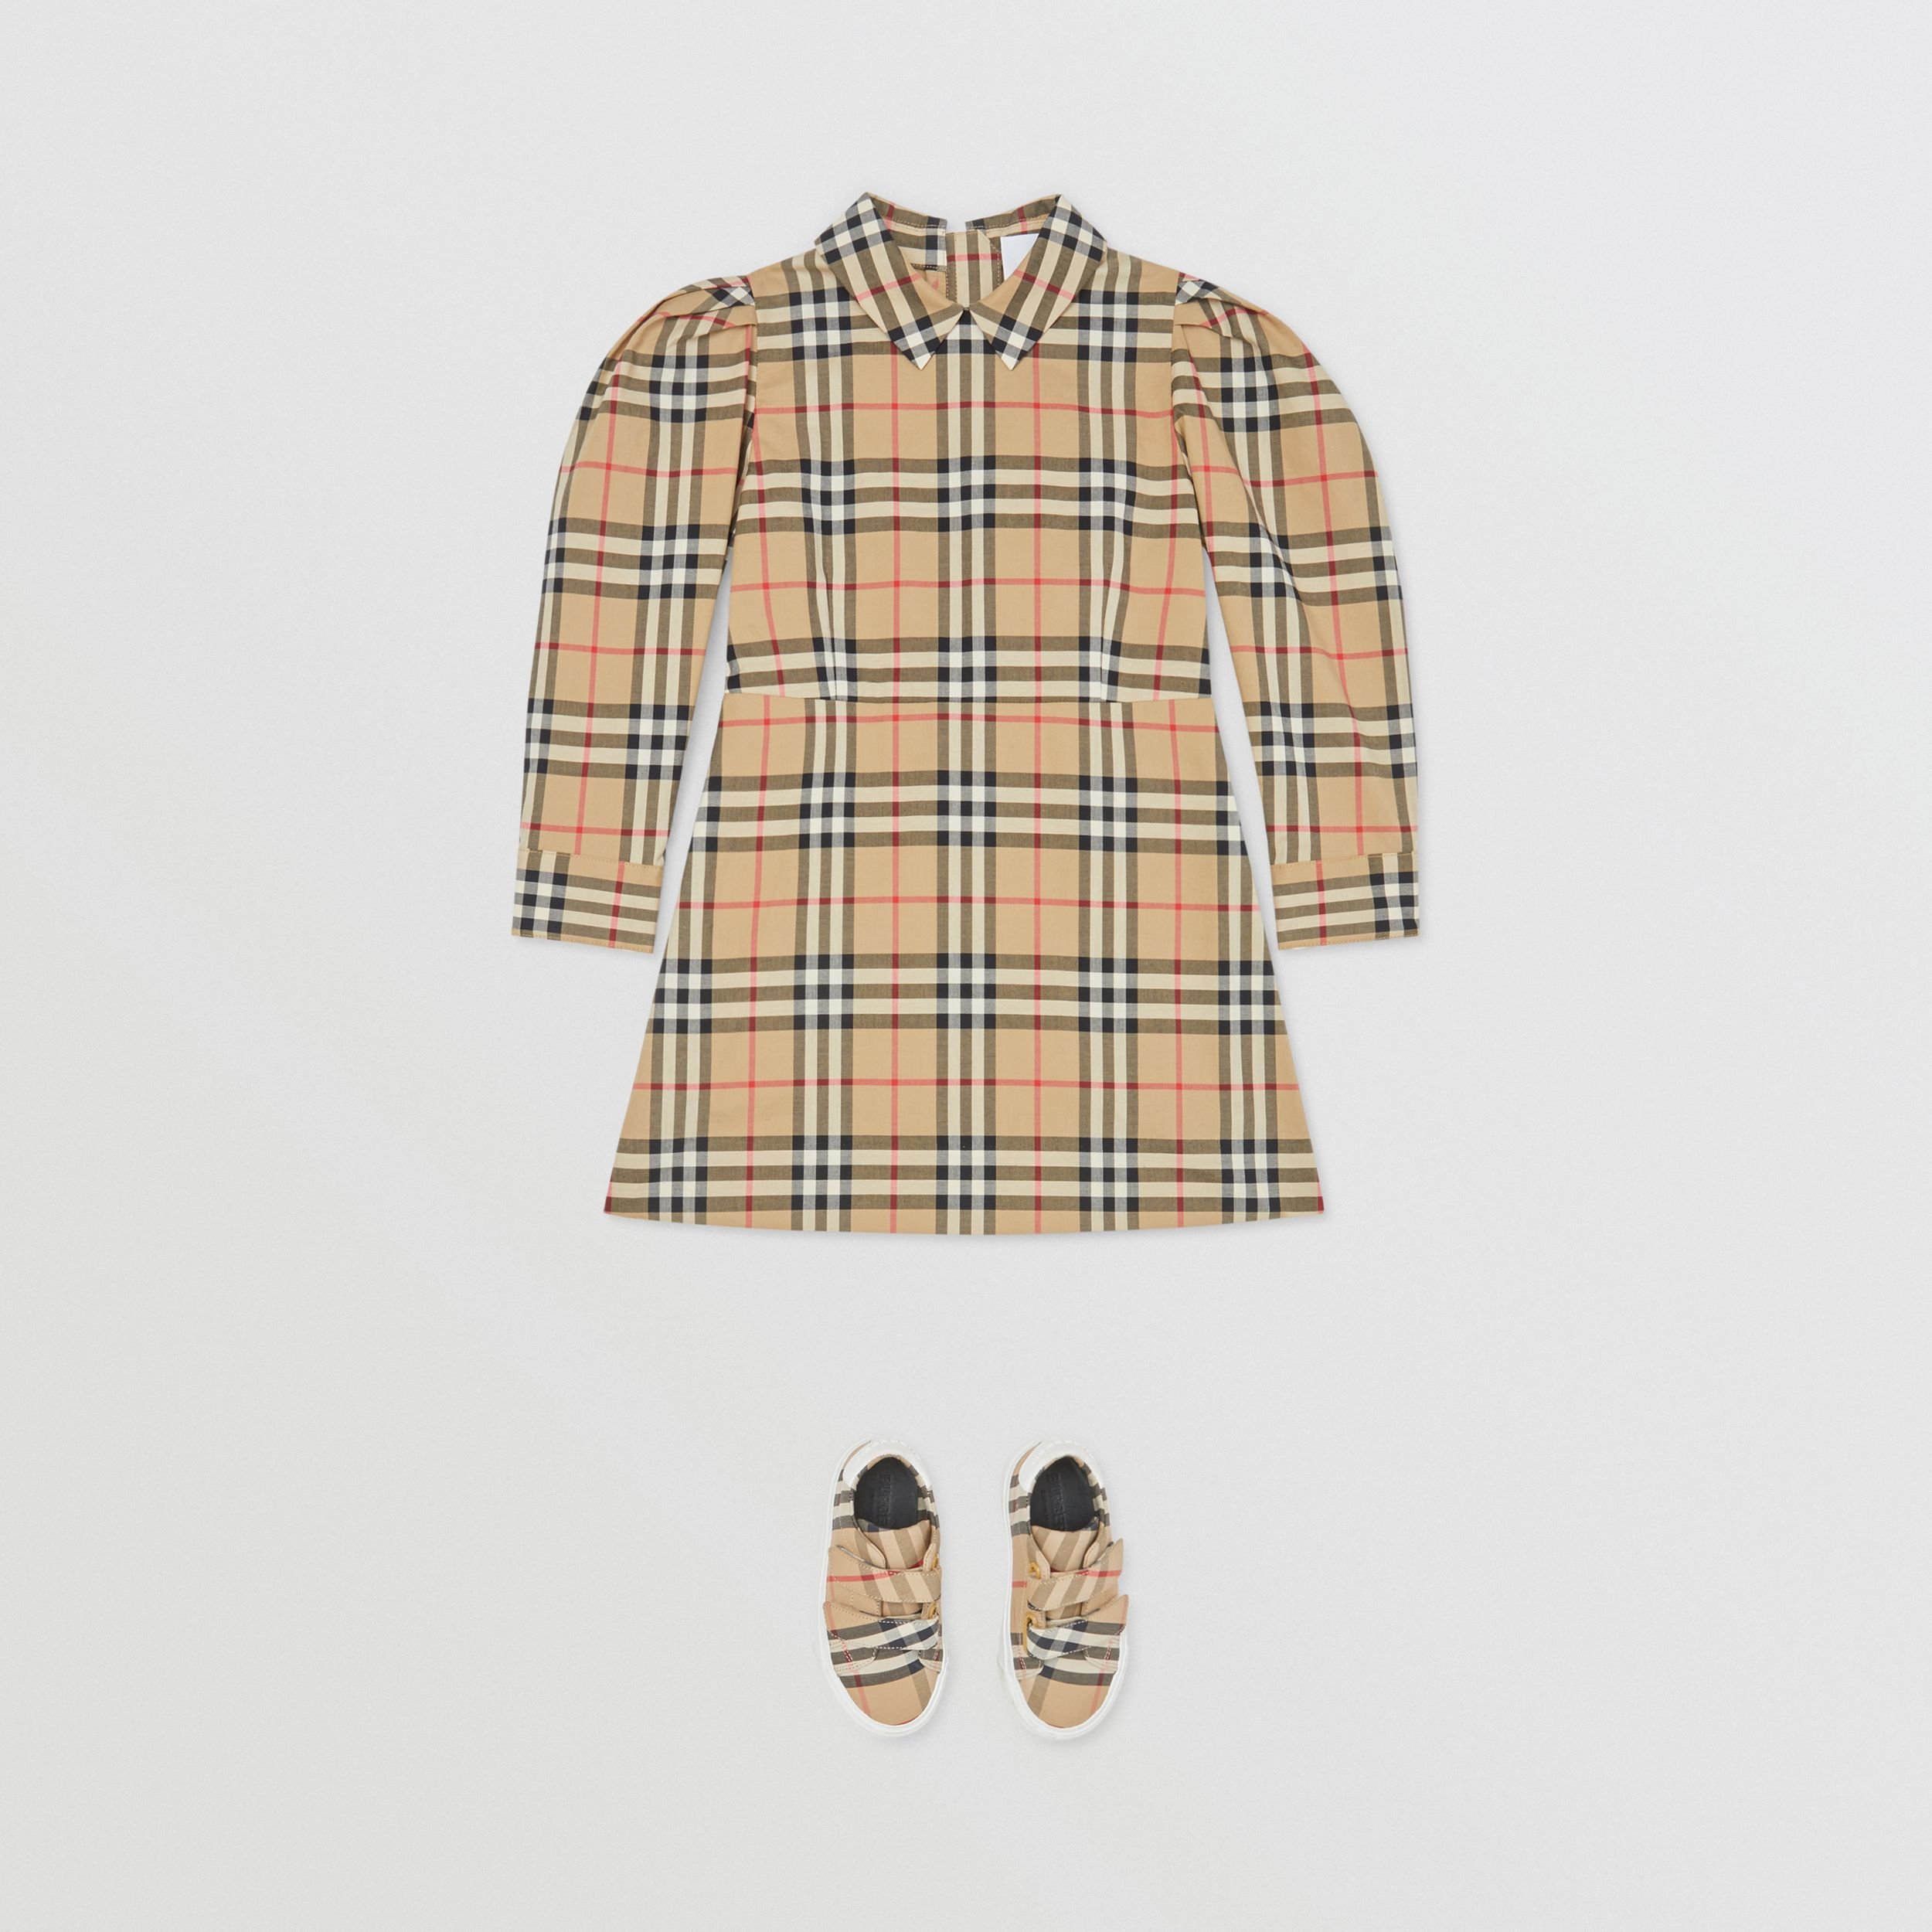 Puff-sleeve Vintage Check Cotton Dress in Archive Beige | Burberry - 3